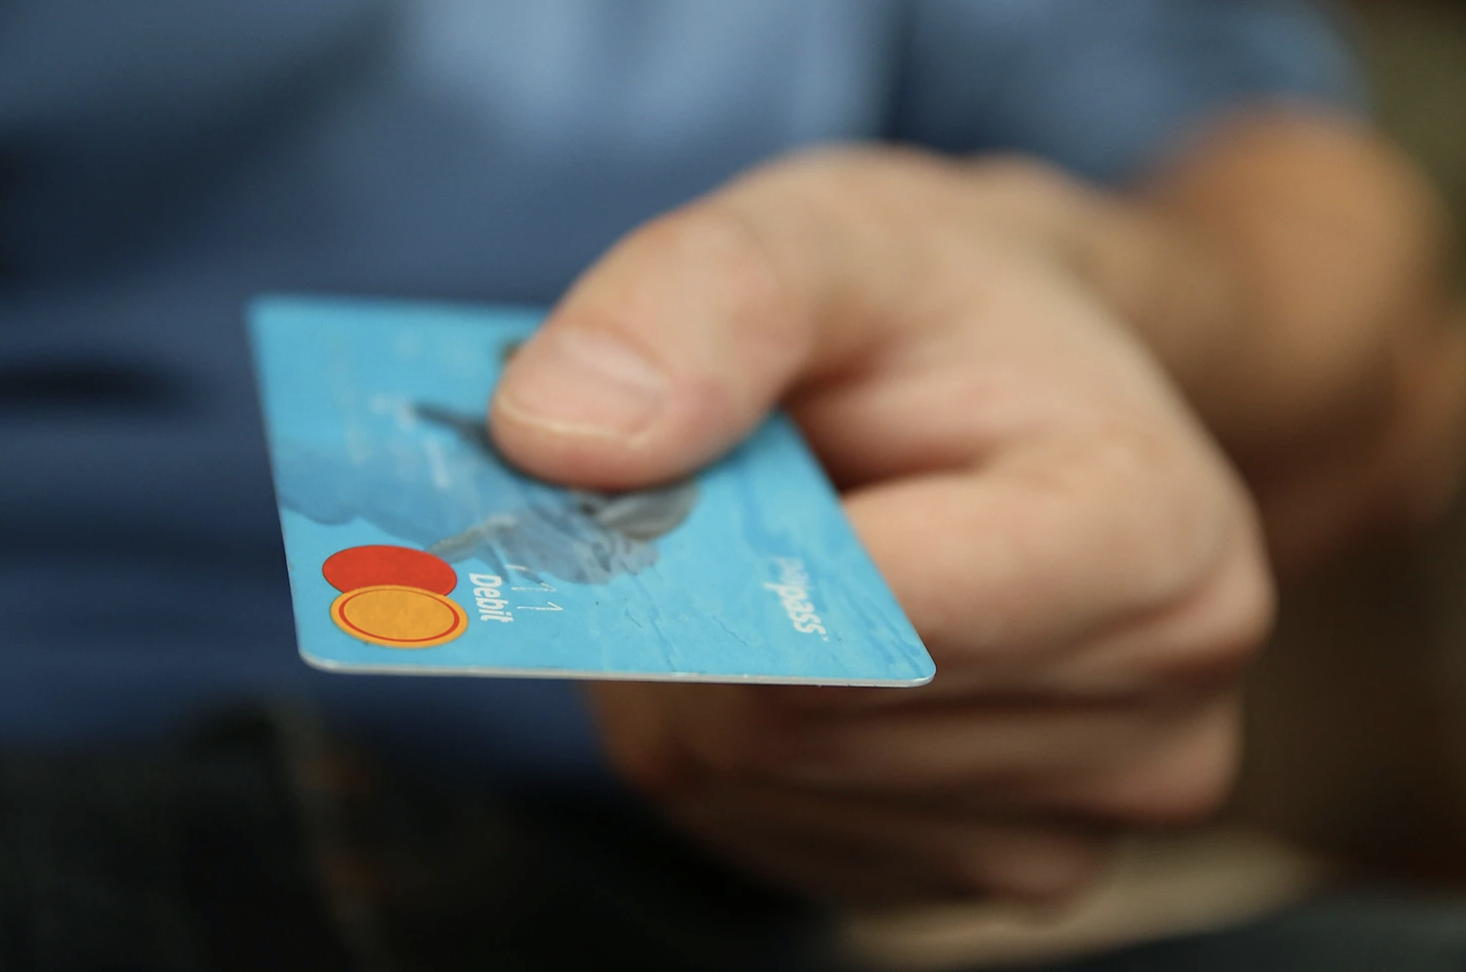 Debit Cards vs Credit Cards: When To Use Each One | The Loaded Pig